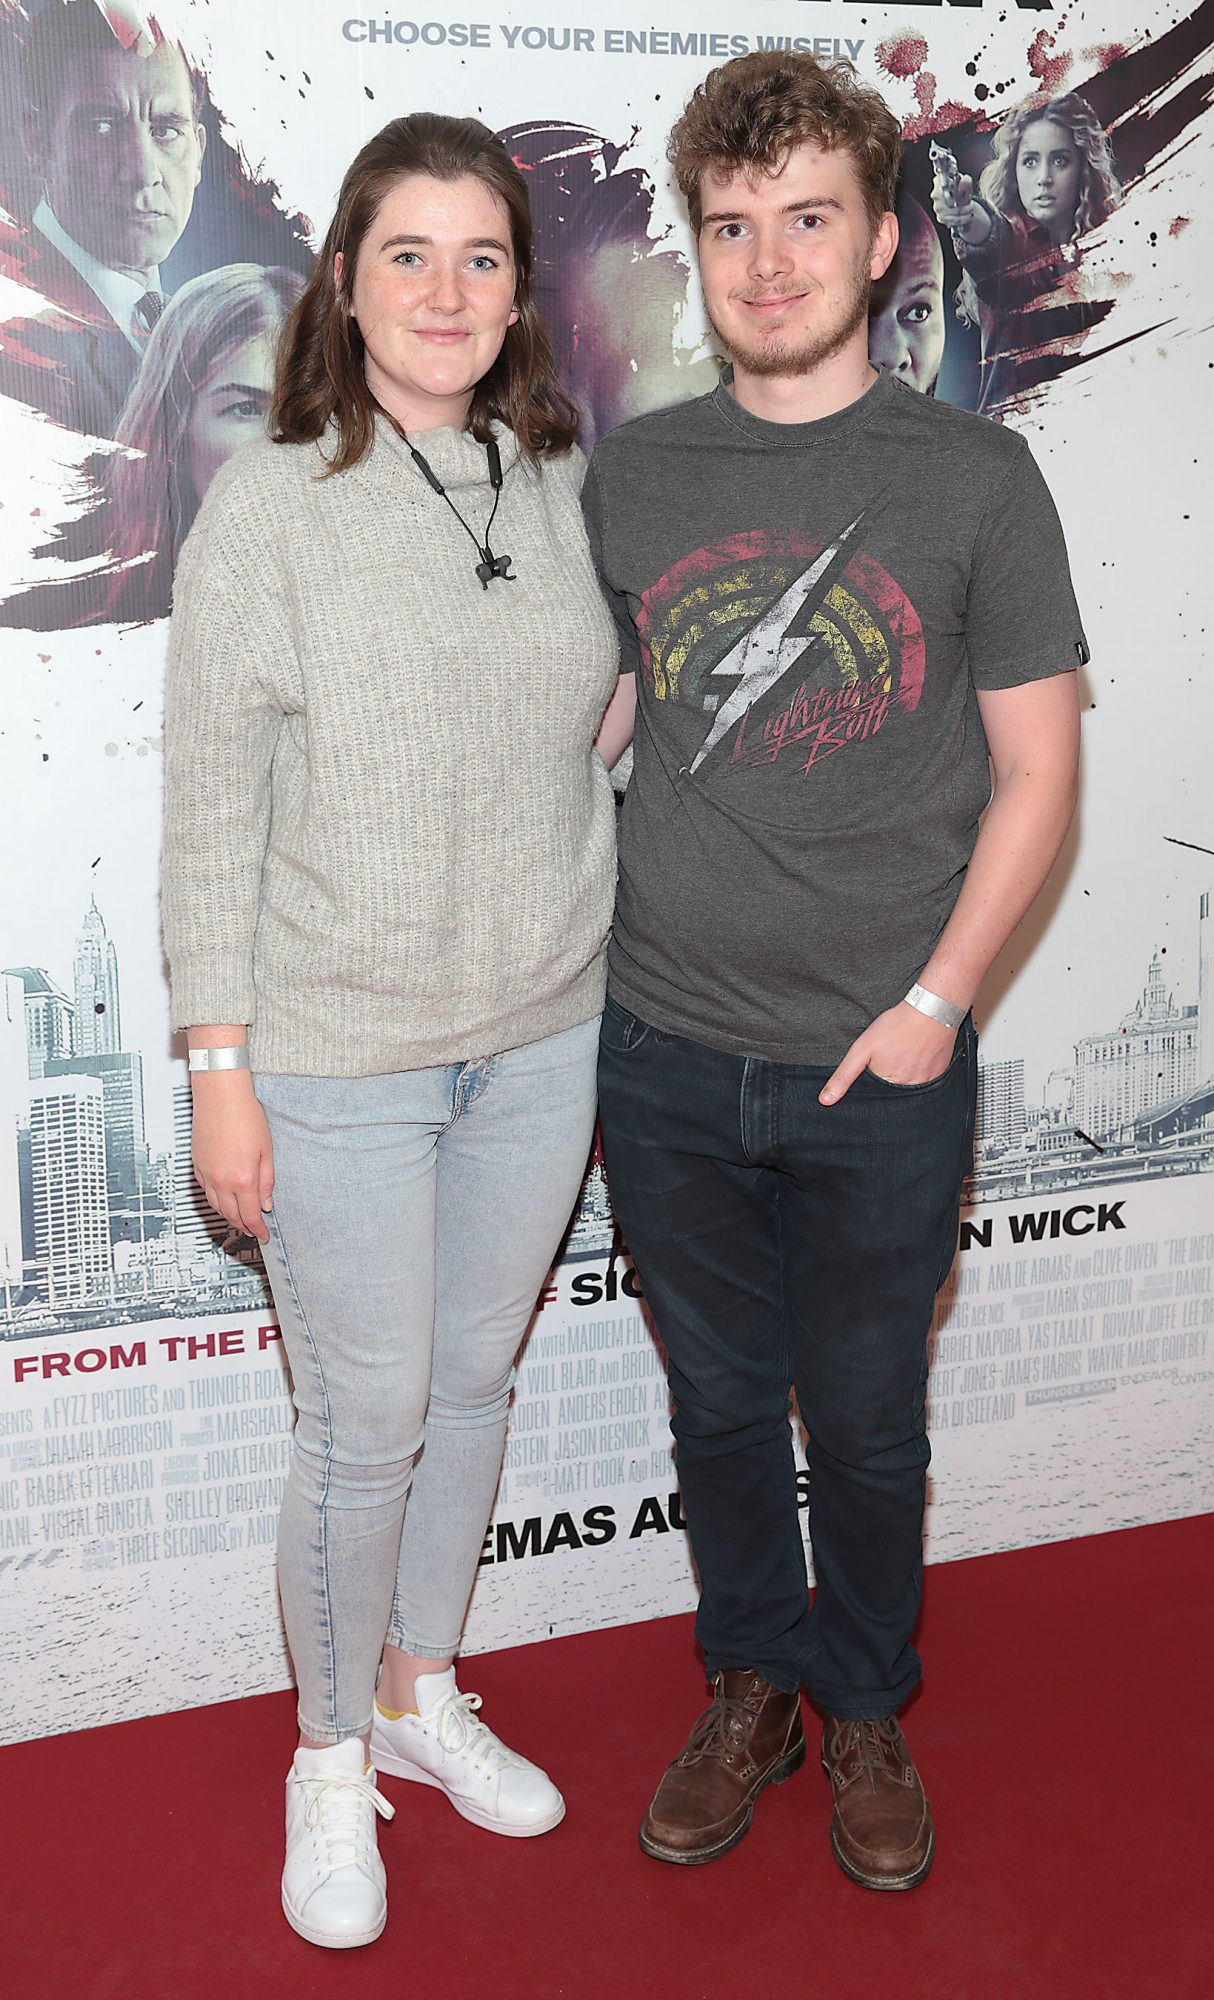 Susan Kelly and Nicky Casey at the special preview screening of The Informer at the Lighthouse Cinema Dublin. Pic: Brian McEvoy